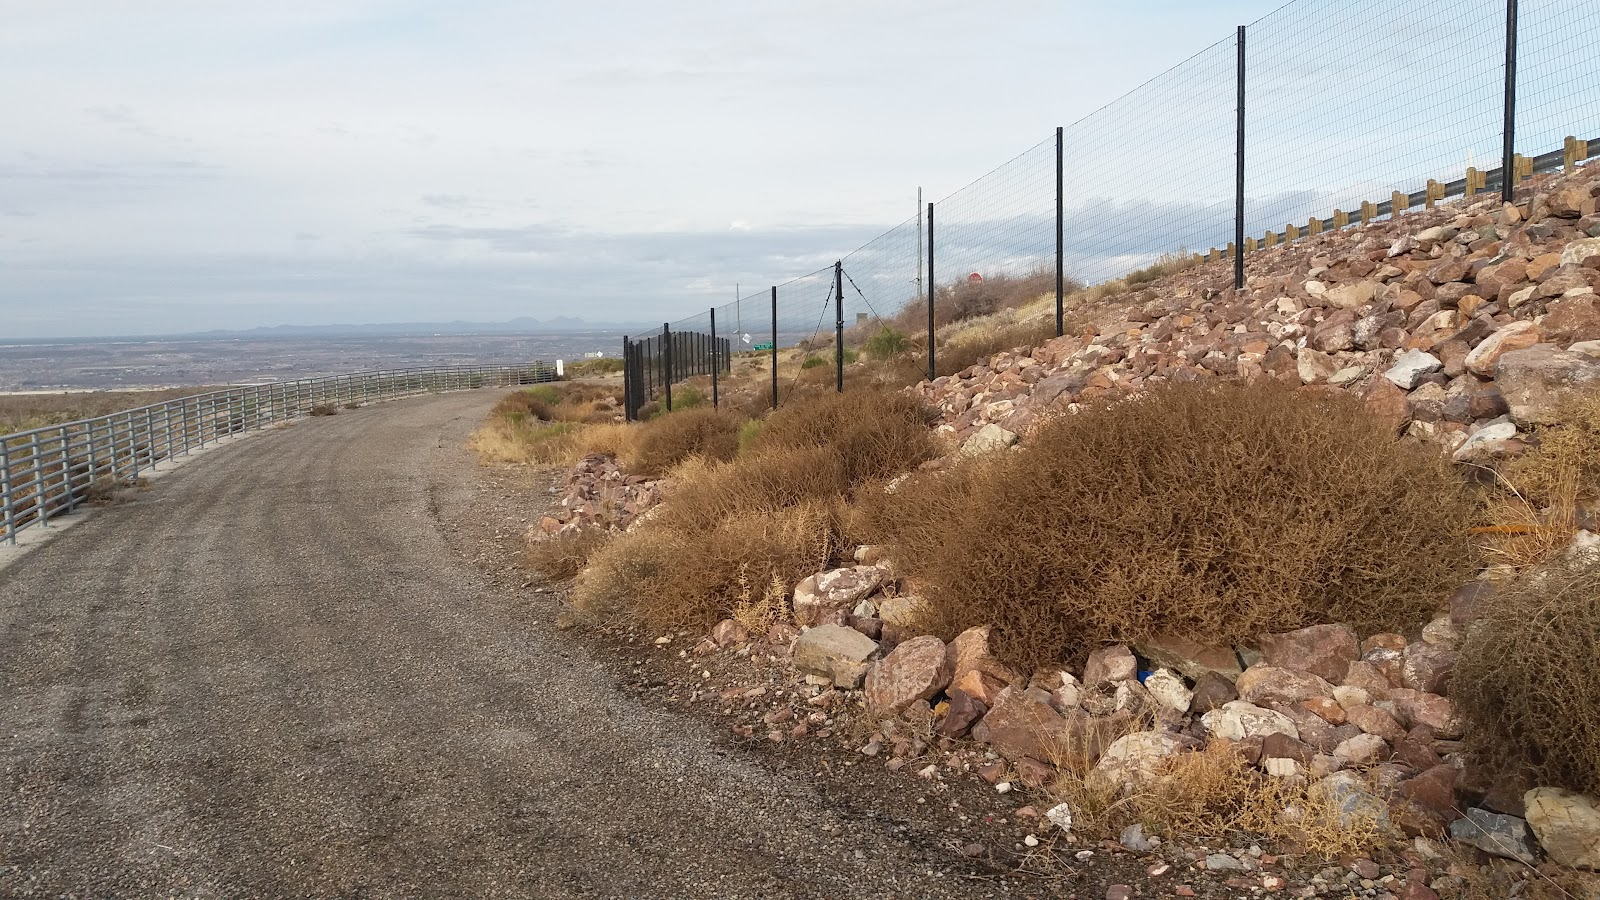 Bicycle climb Smugglers Pass West - Transmountain Drive - gravel path